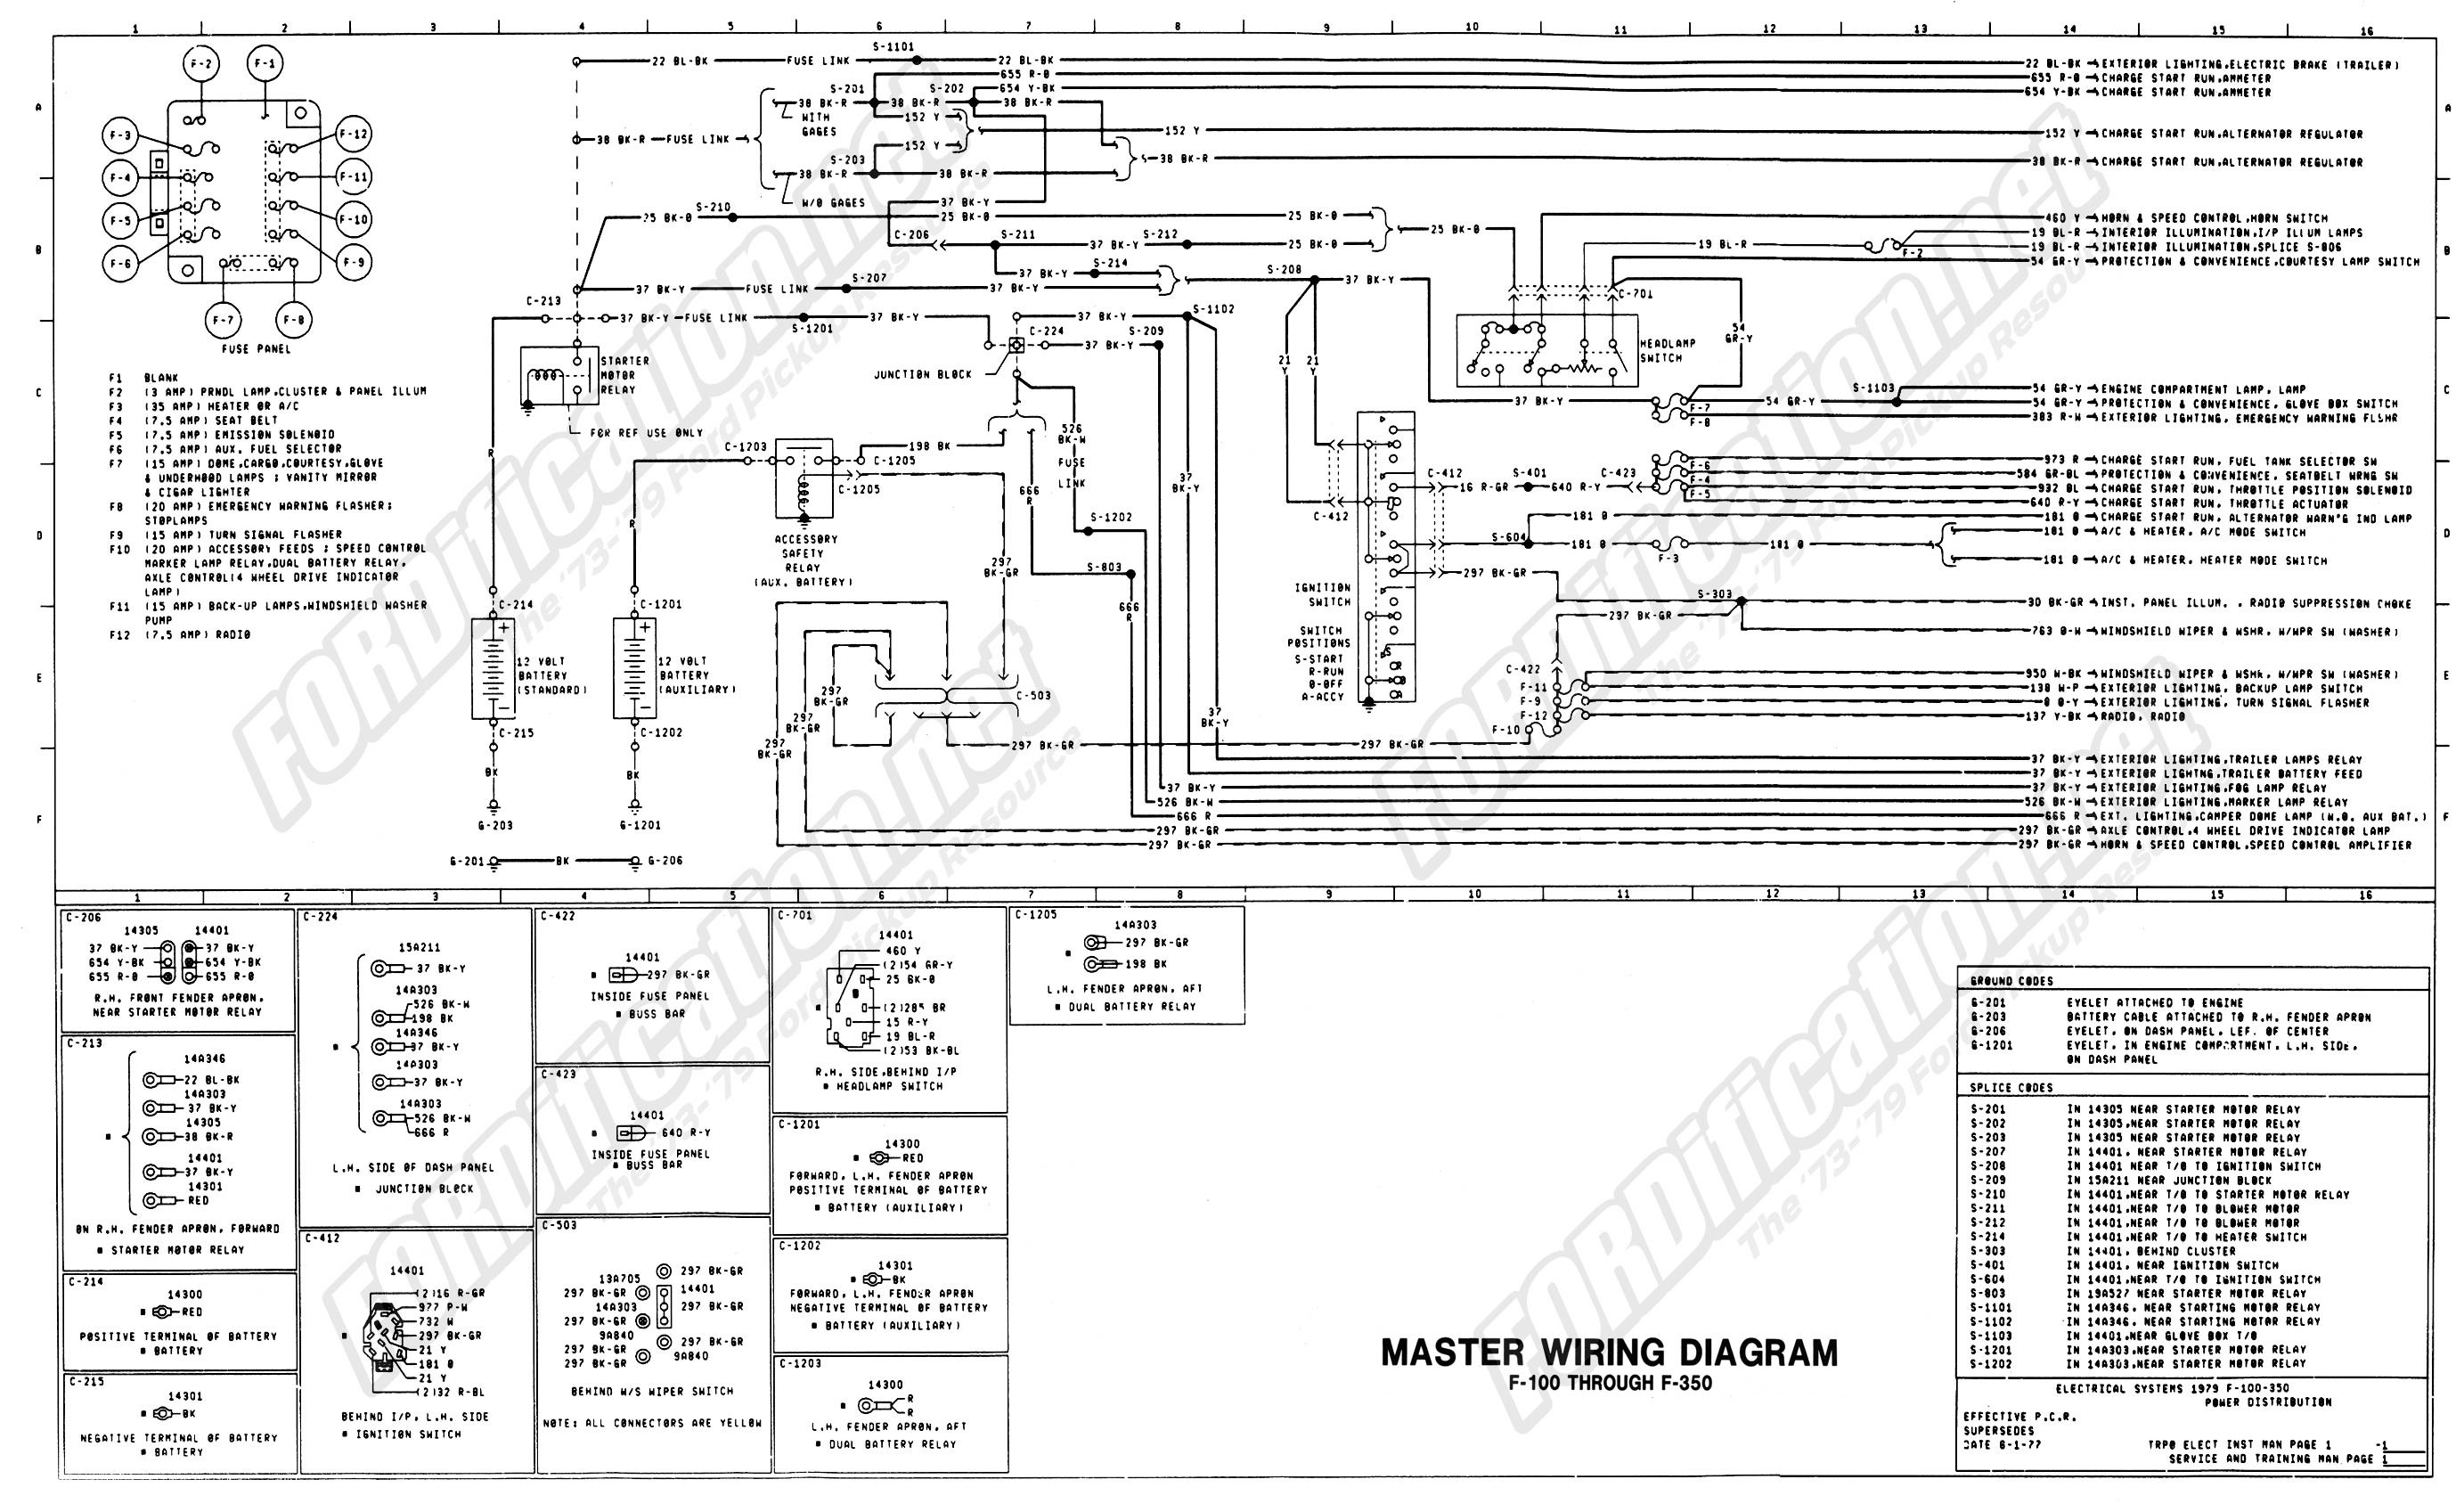 2003 ford Escape Engine Diagram 79 F150 solenoid Wiring Diagram ford Truck  Enthusiasts forums Of 2003